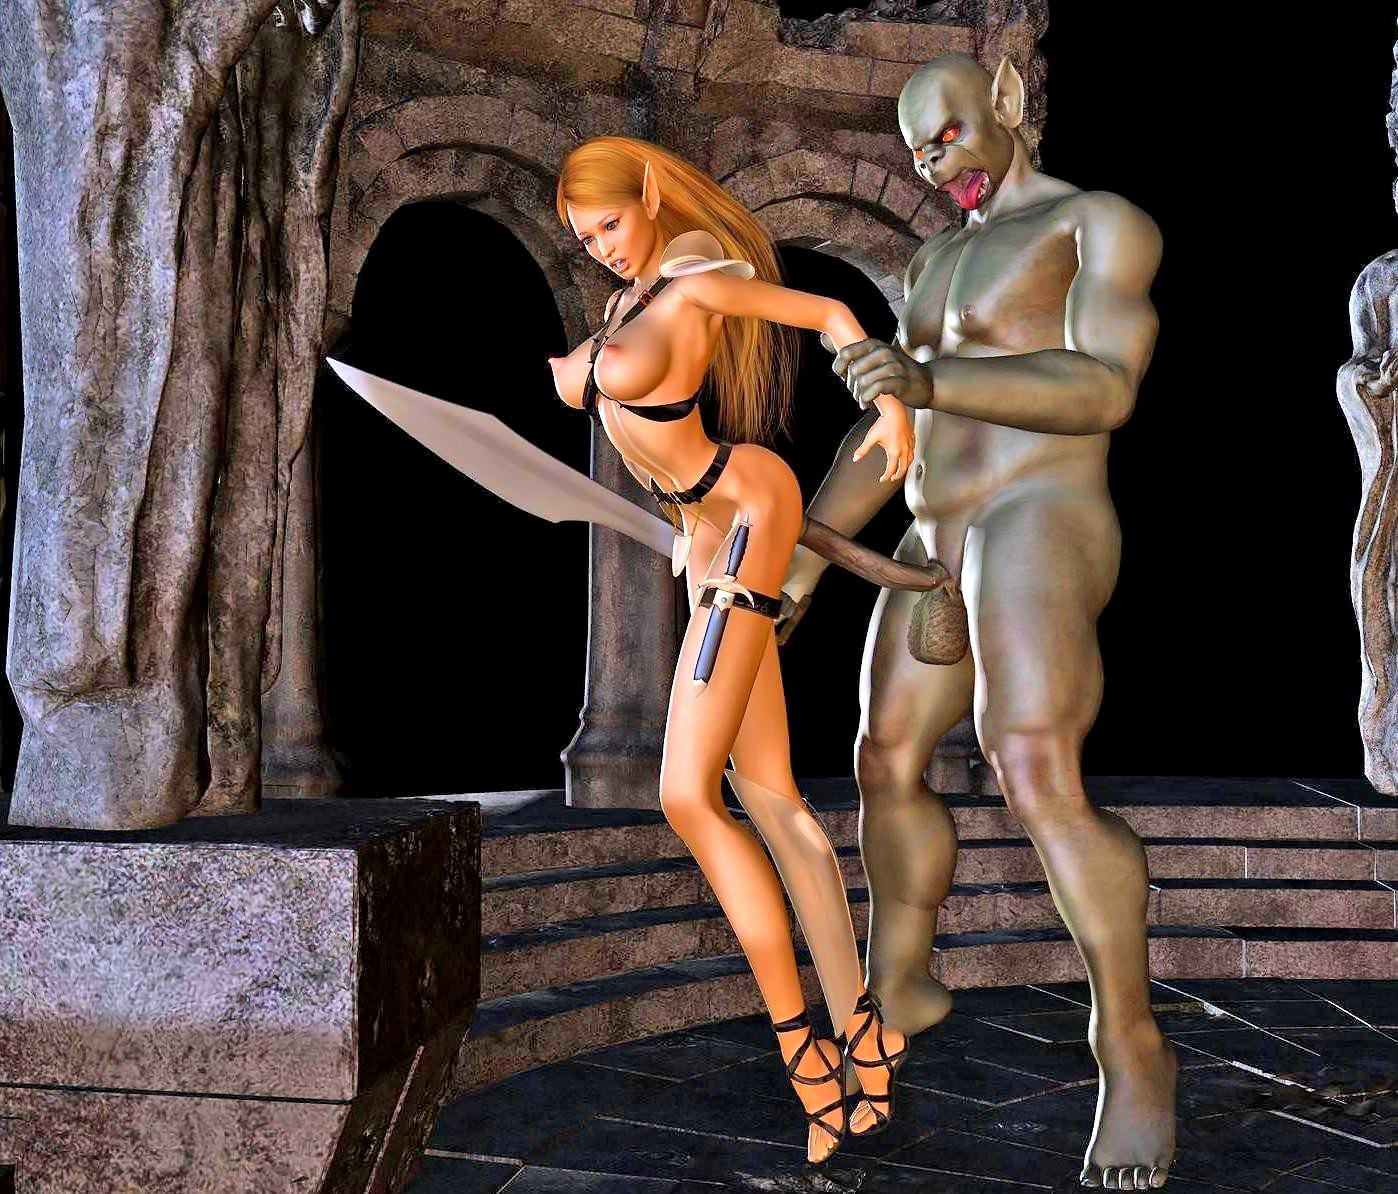 Animated warrior porn video xxx galleries